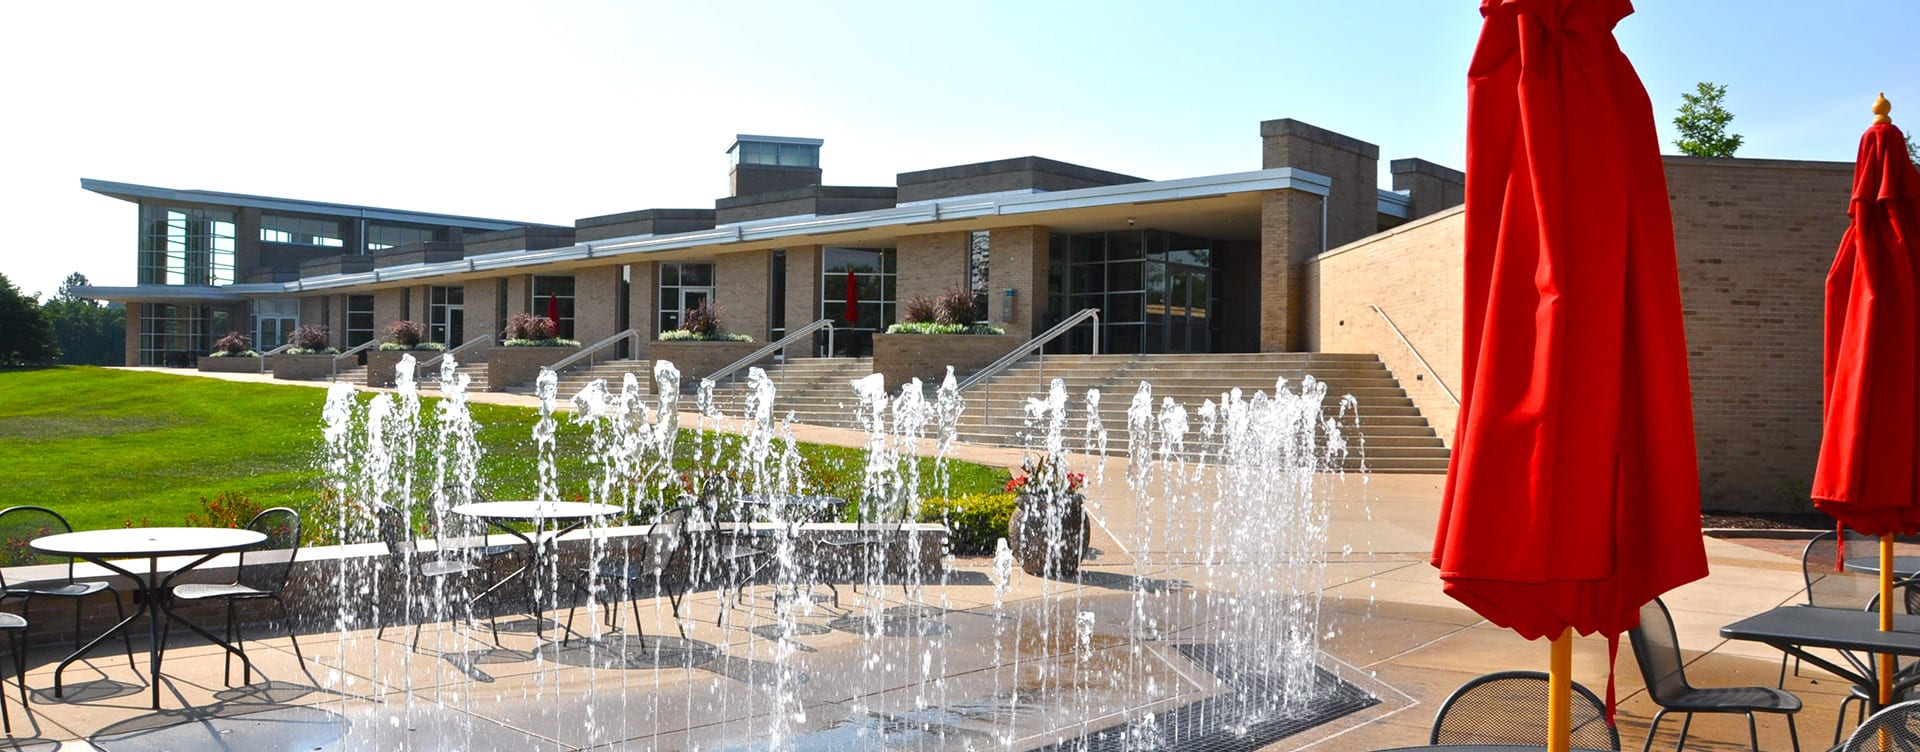 Maryville fountain by the library